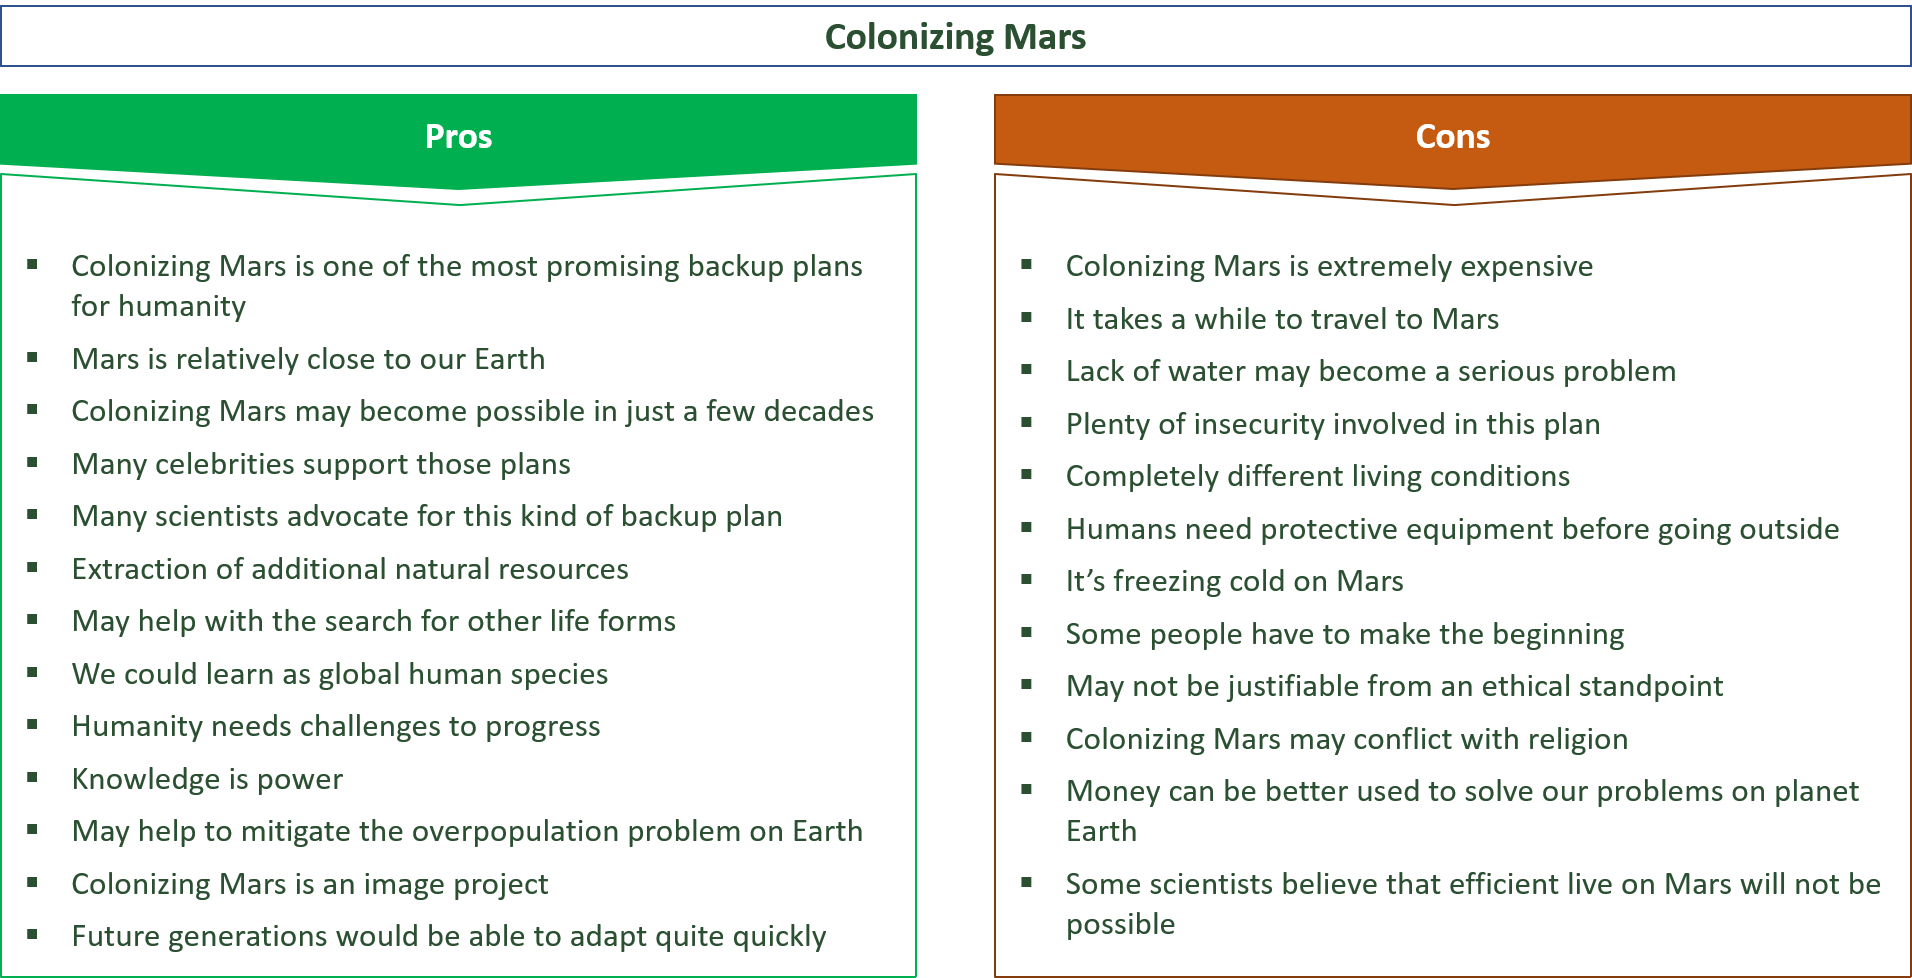 advantages and disadvantages of colonizing Mars